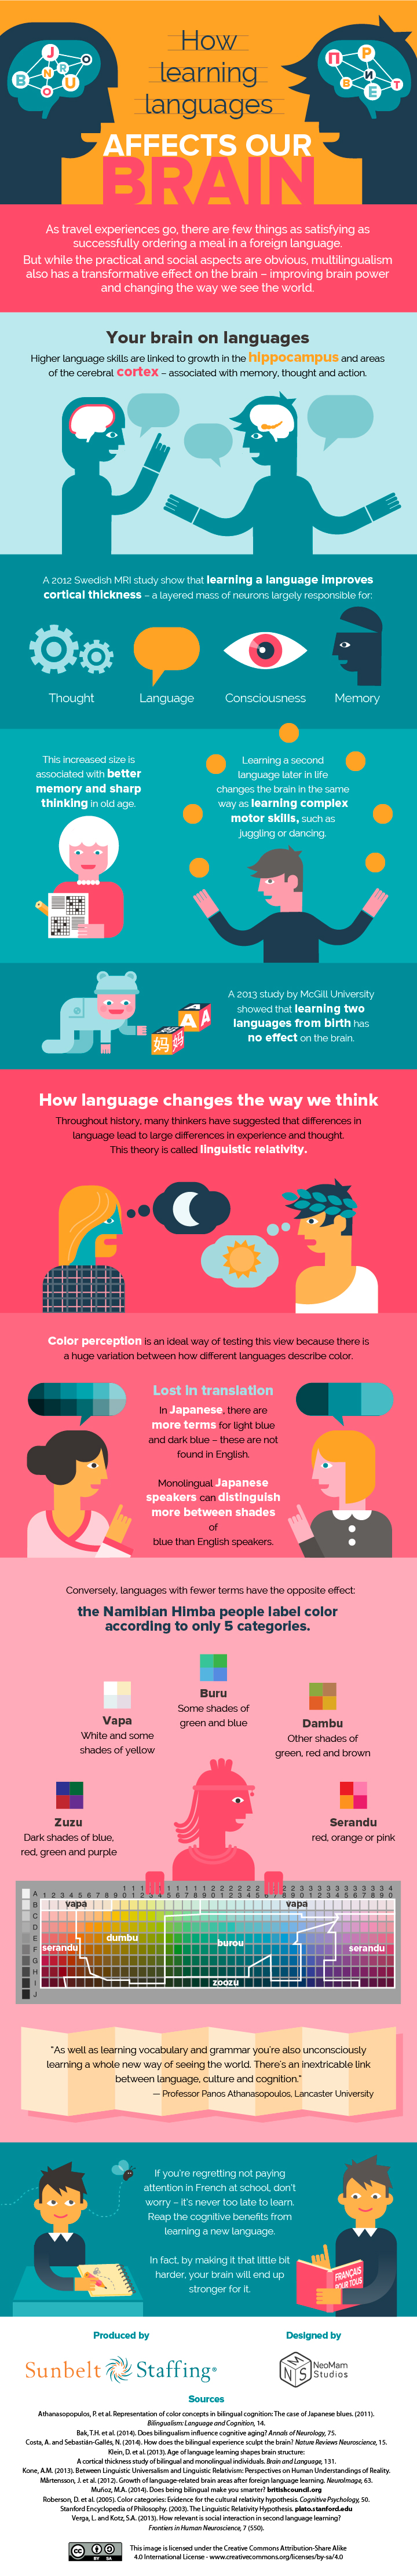 How Learning Languages Affects Our Brain - Infographic